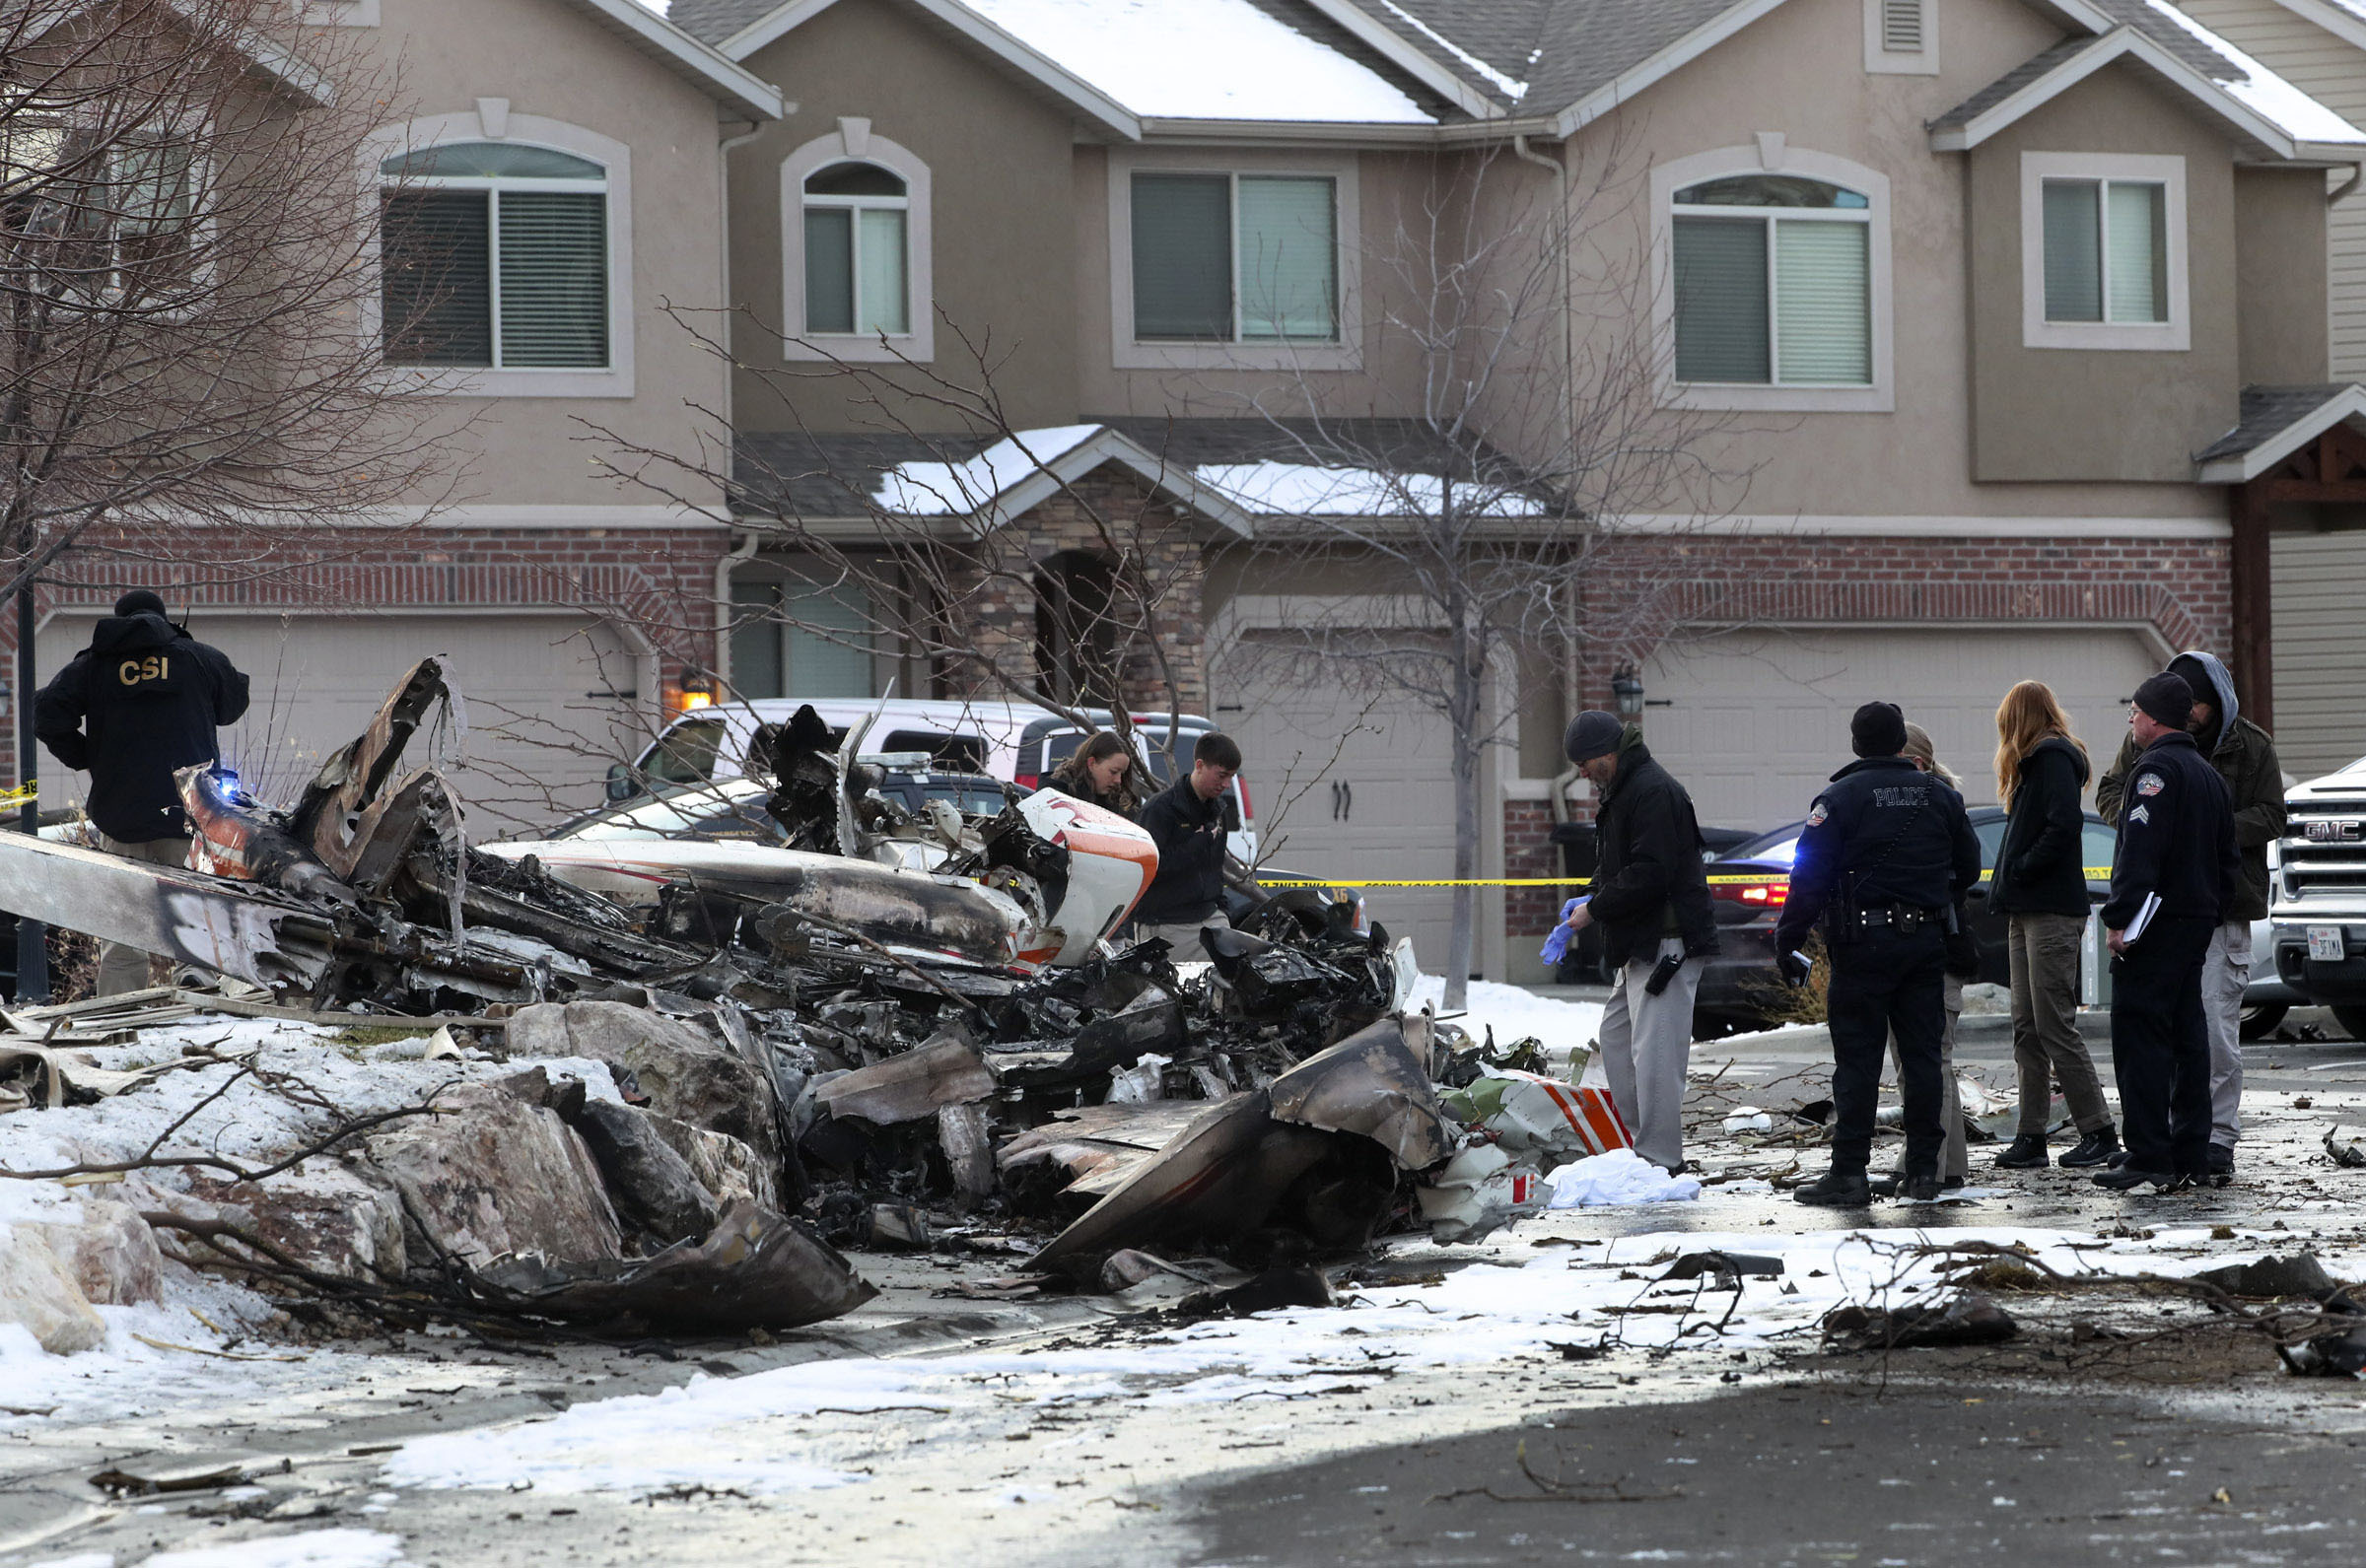 Small plane crashes in Utah neighborhood, killing pilot